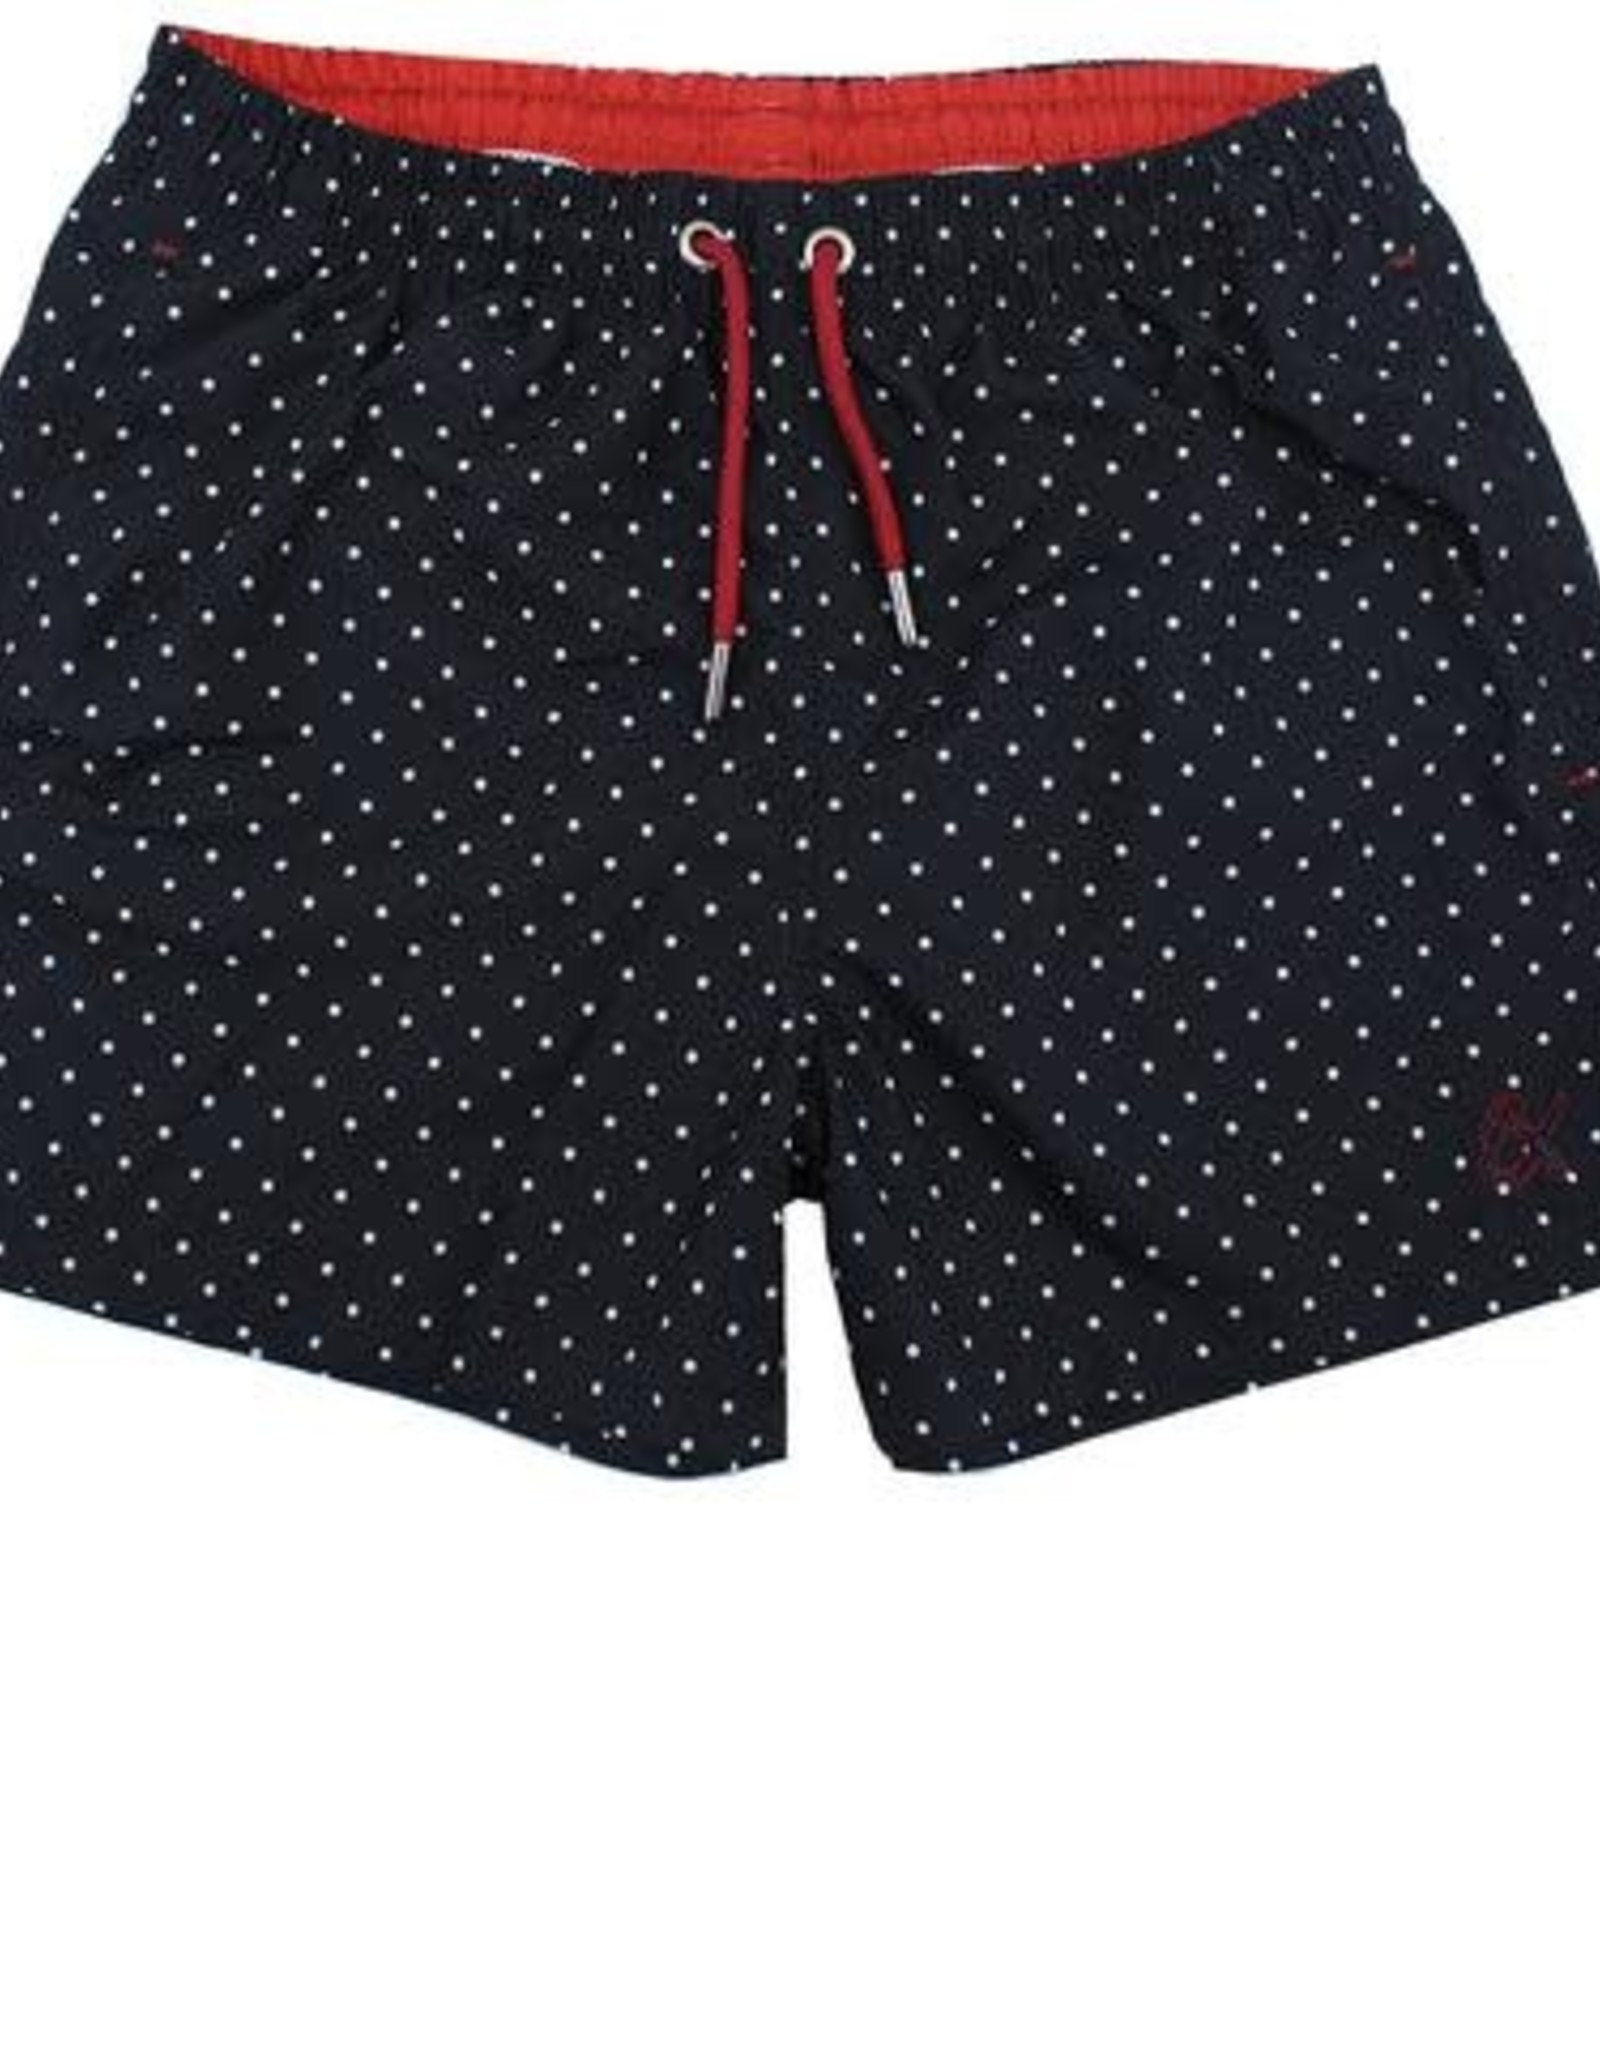 Eight X Black/White Dot Swim Trunk